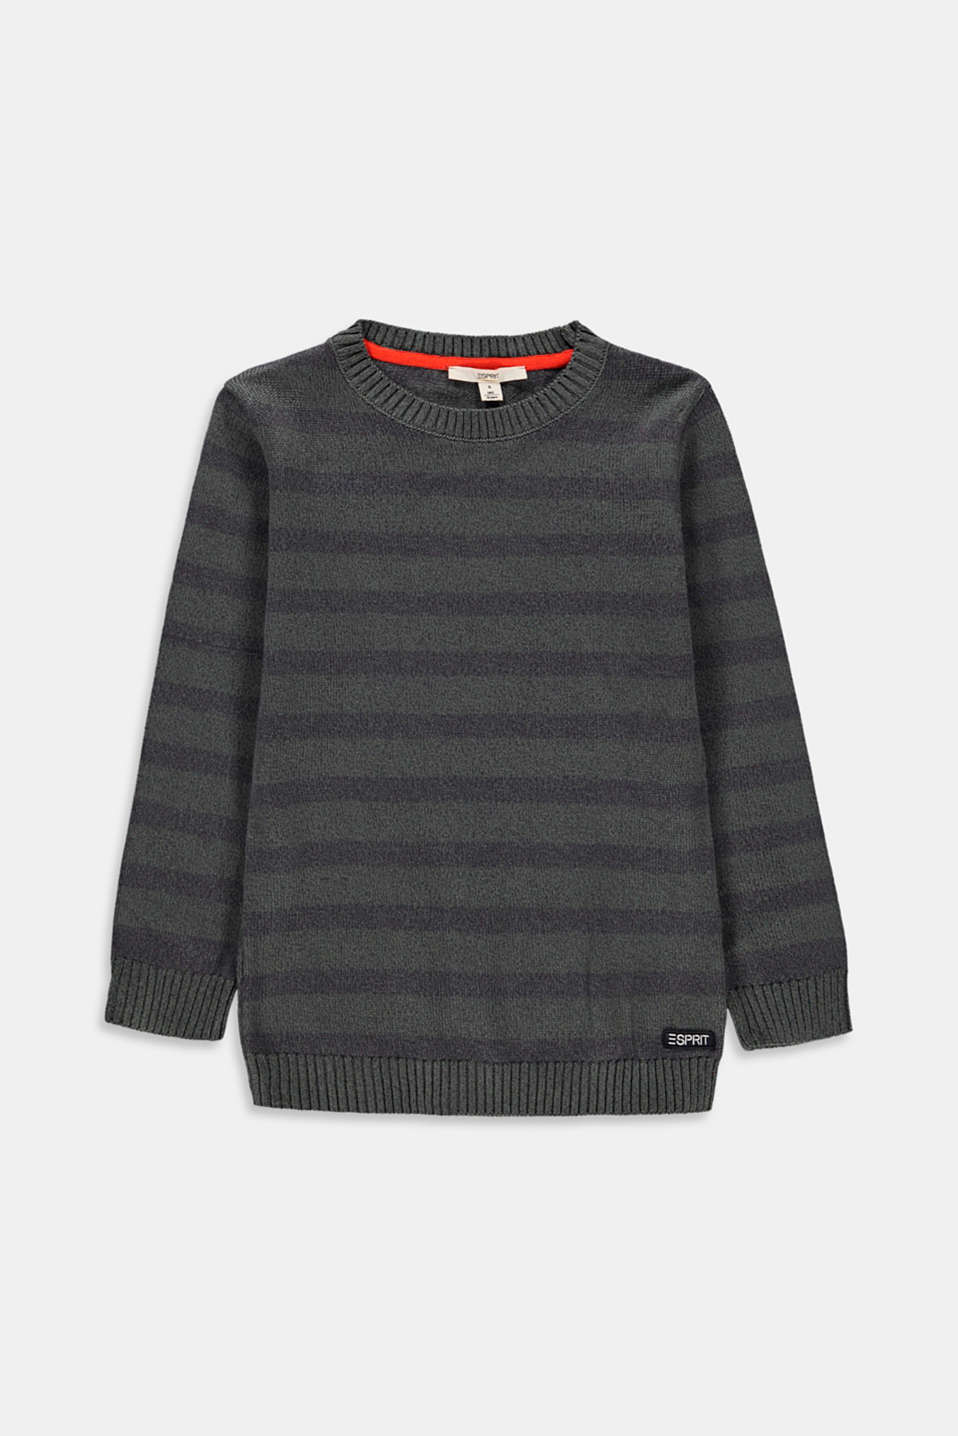 Esprit - Pull-over rayé, 100 % coton